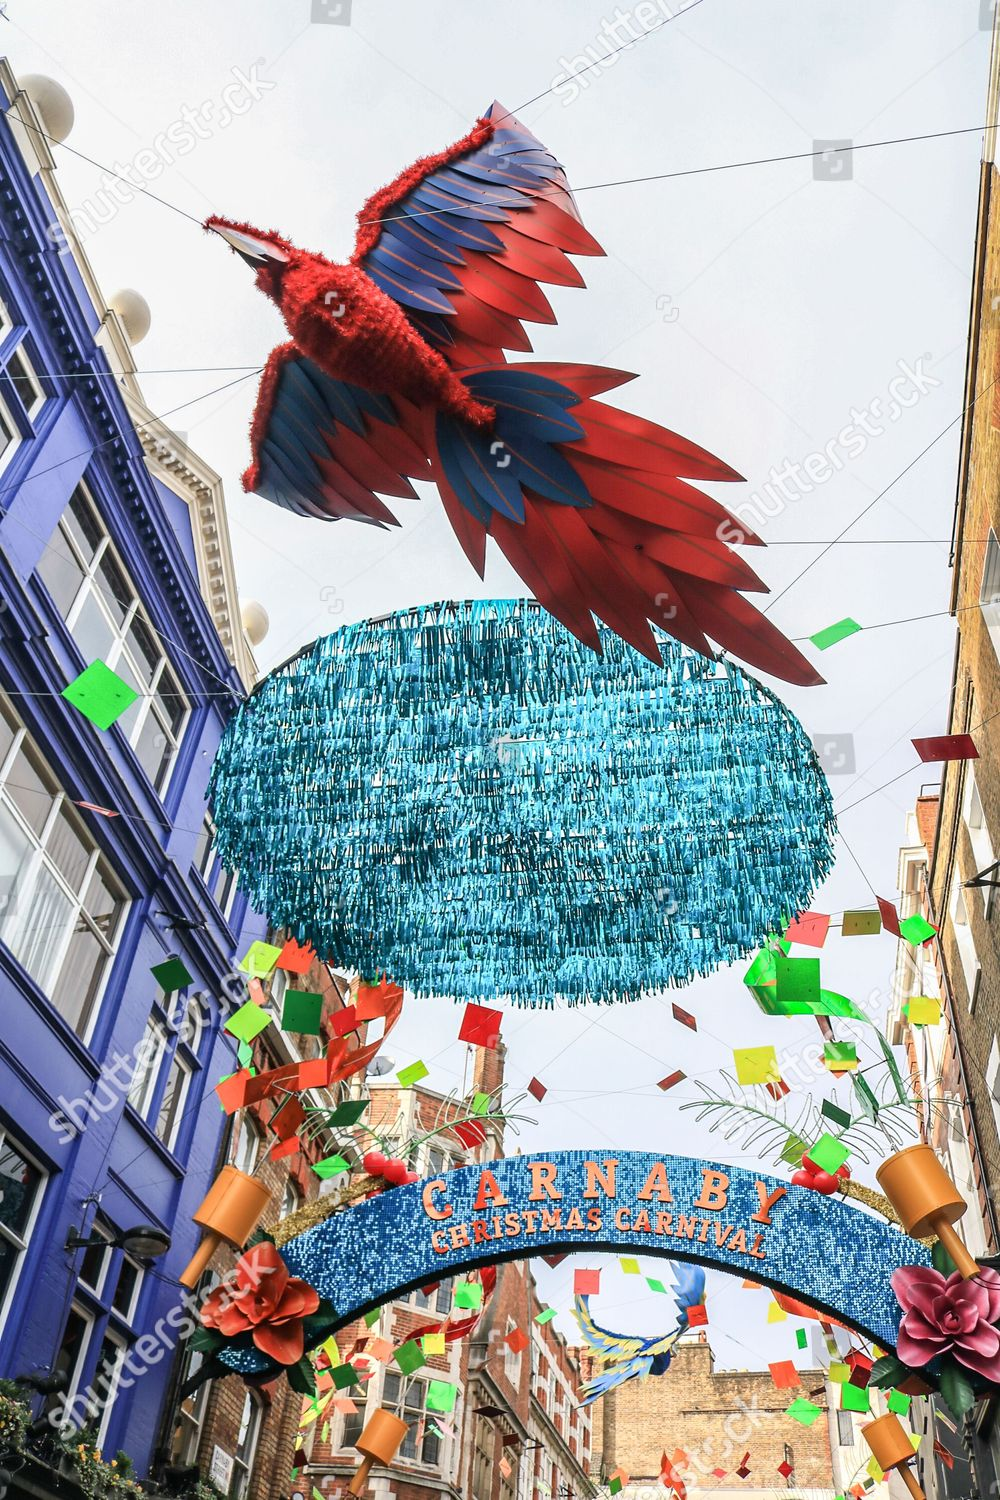 London Carnaby Street Christmas Decorations Carnival Theme